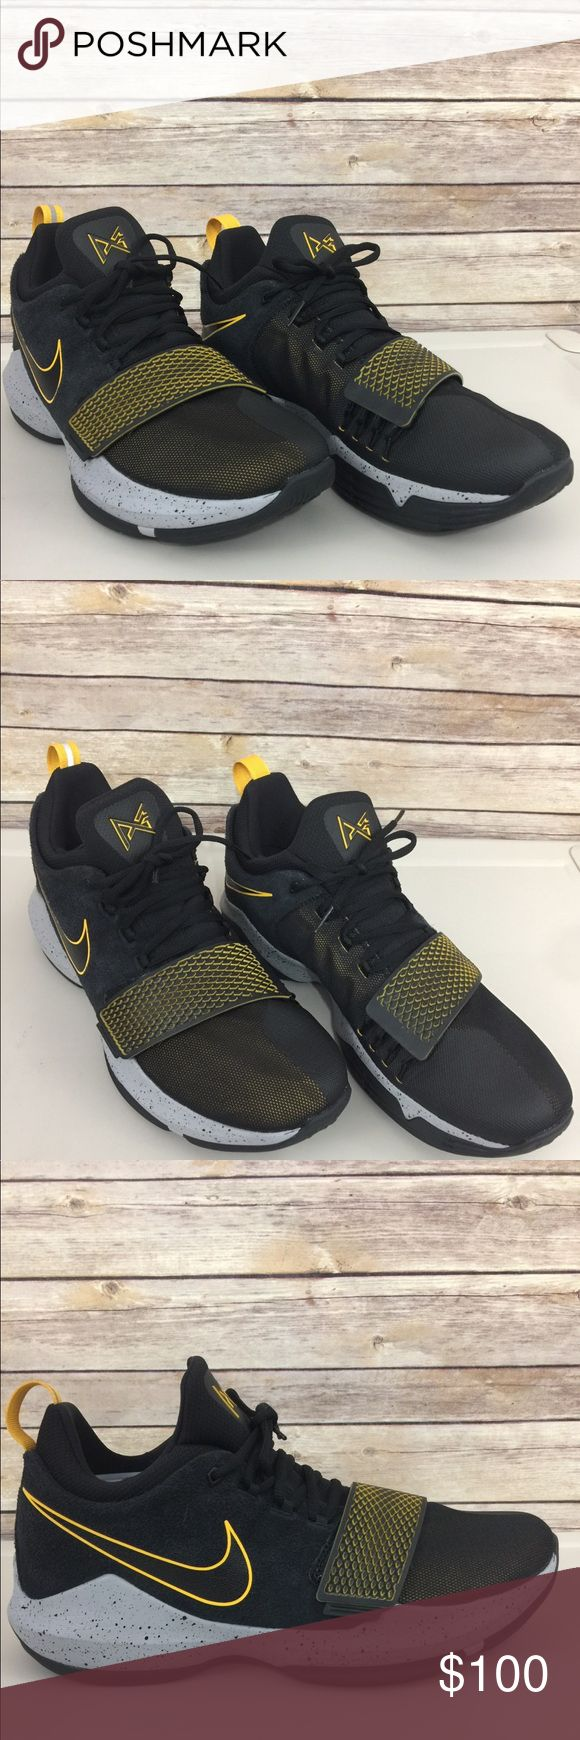 Nike PG 1 Paul George Black University Gold Gray Nike PG 1 Paul George Black University Gold Grey Men Size 13 EUC   Excellent Used Condition Worn only twice Shoe size run one size smaller than actual size. No Box Nike Paul George Shoes Sneakers